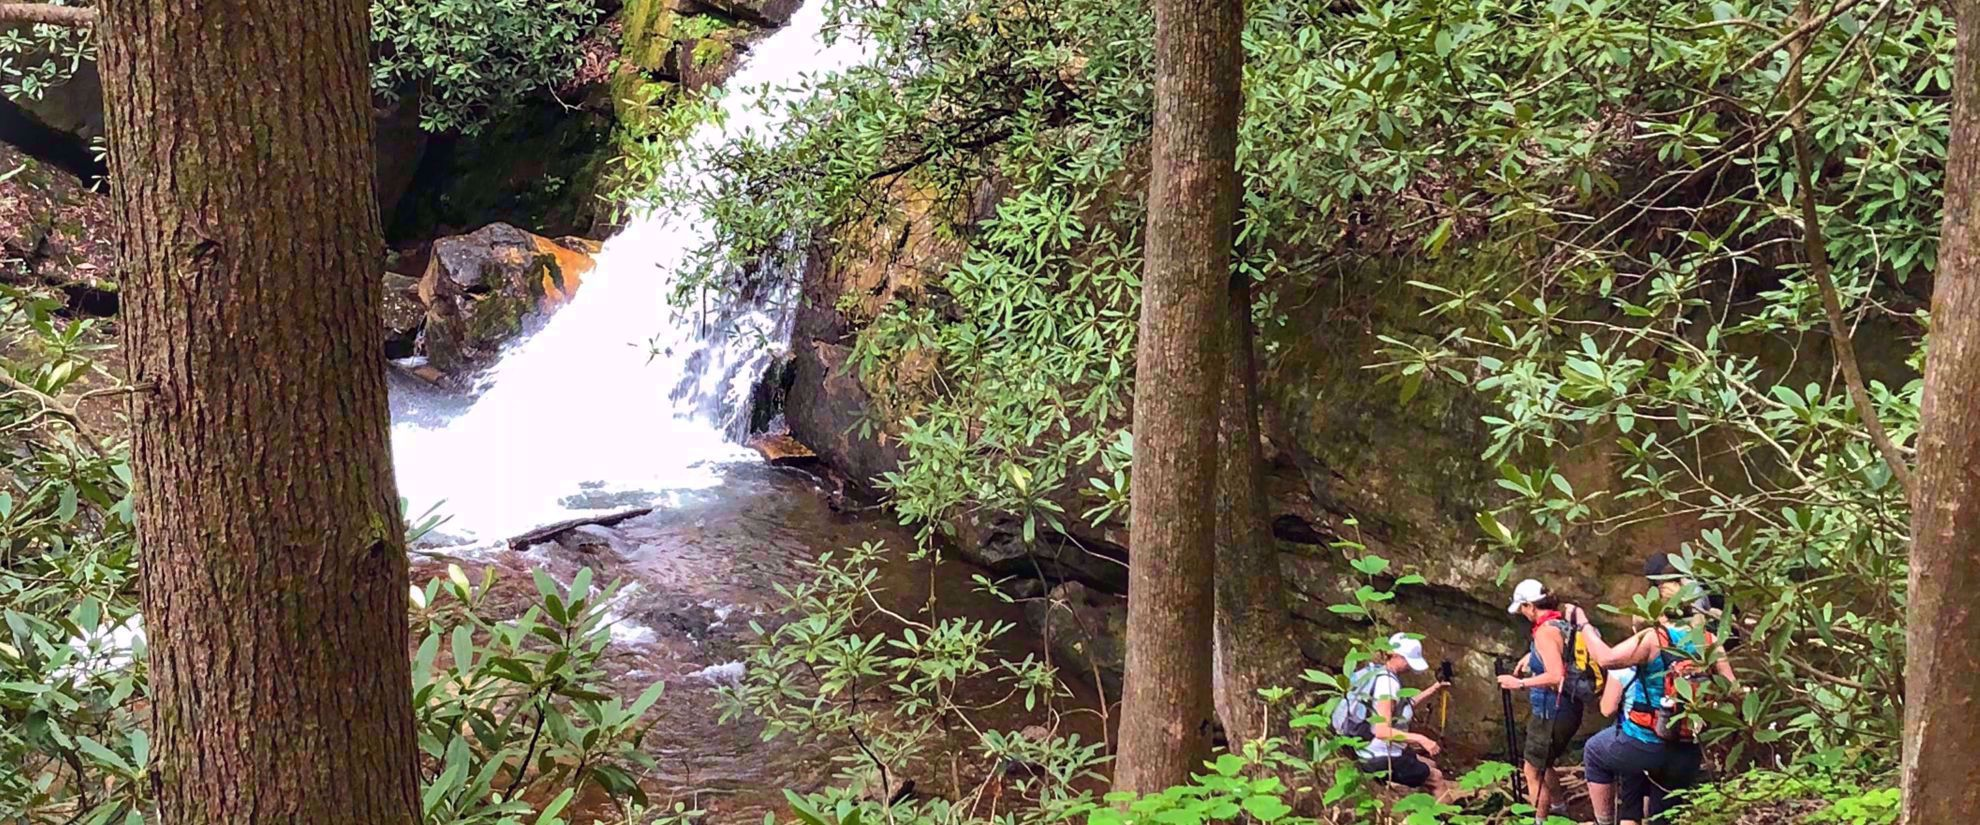 women hiking down to waterfall surrounded by greenery